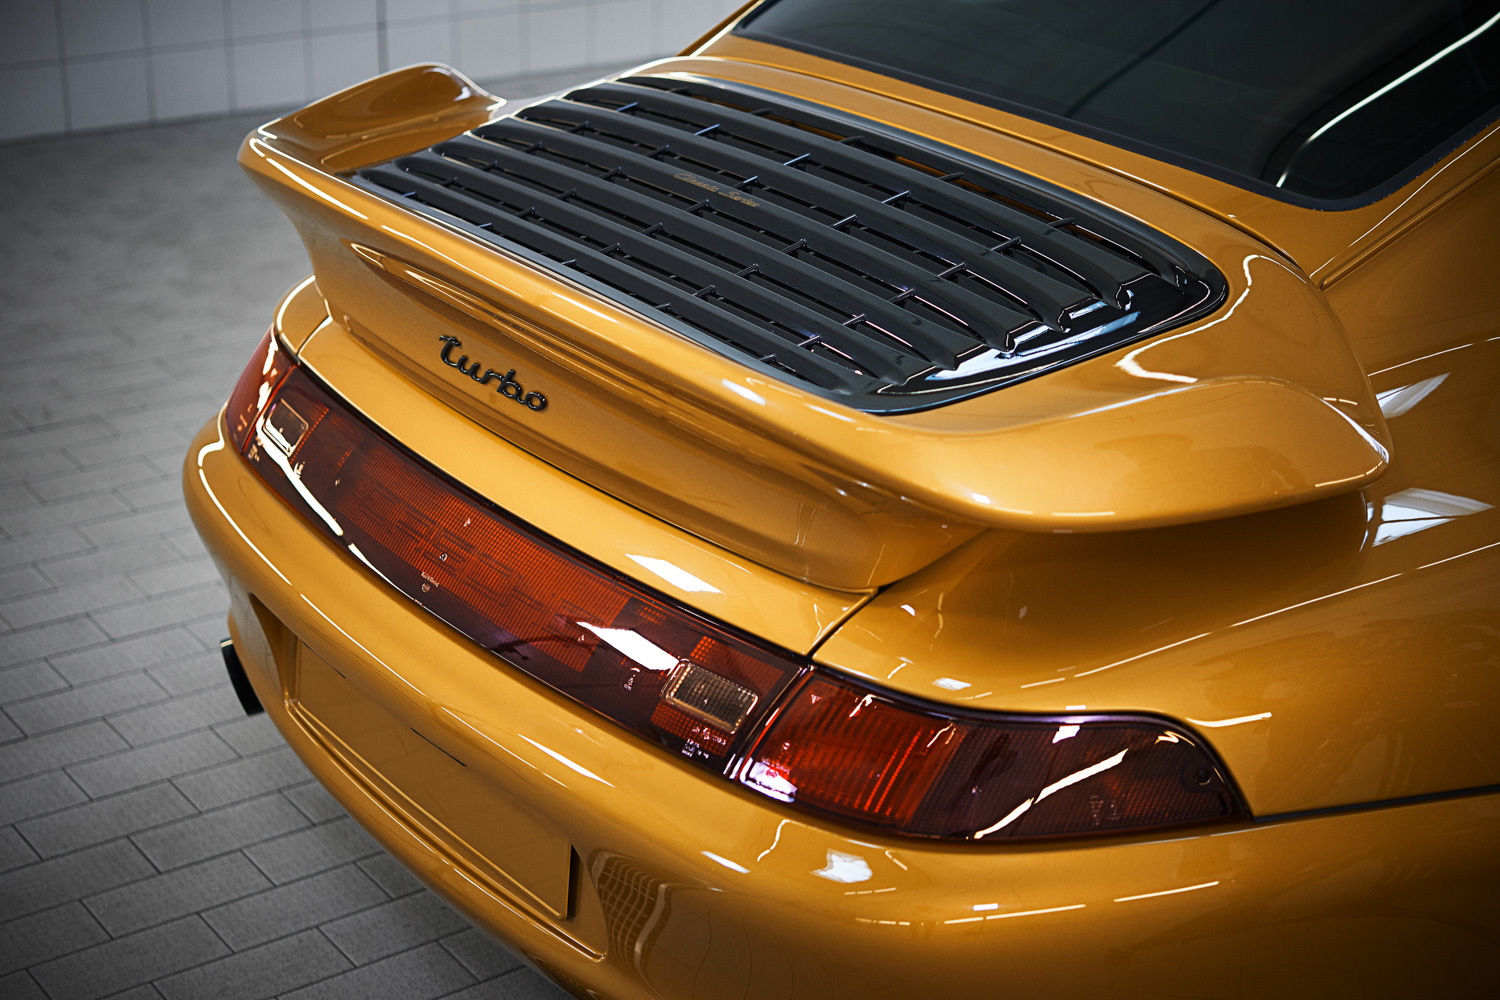 """Porsche """"Project Gold"""" 993 Turbo rear tail wing"""